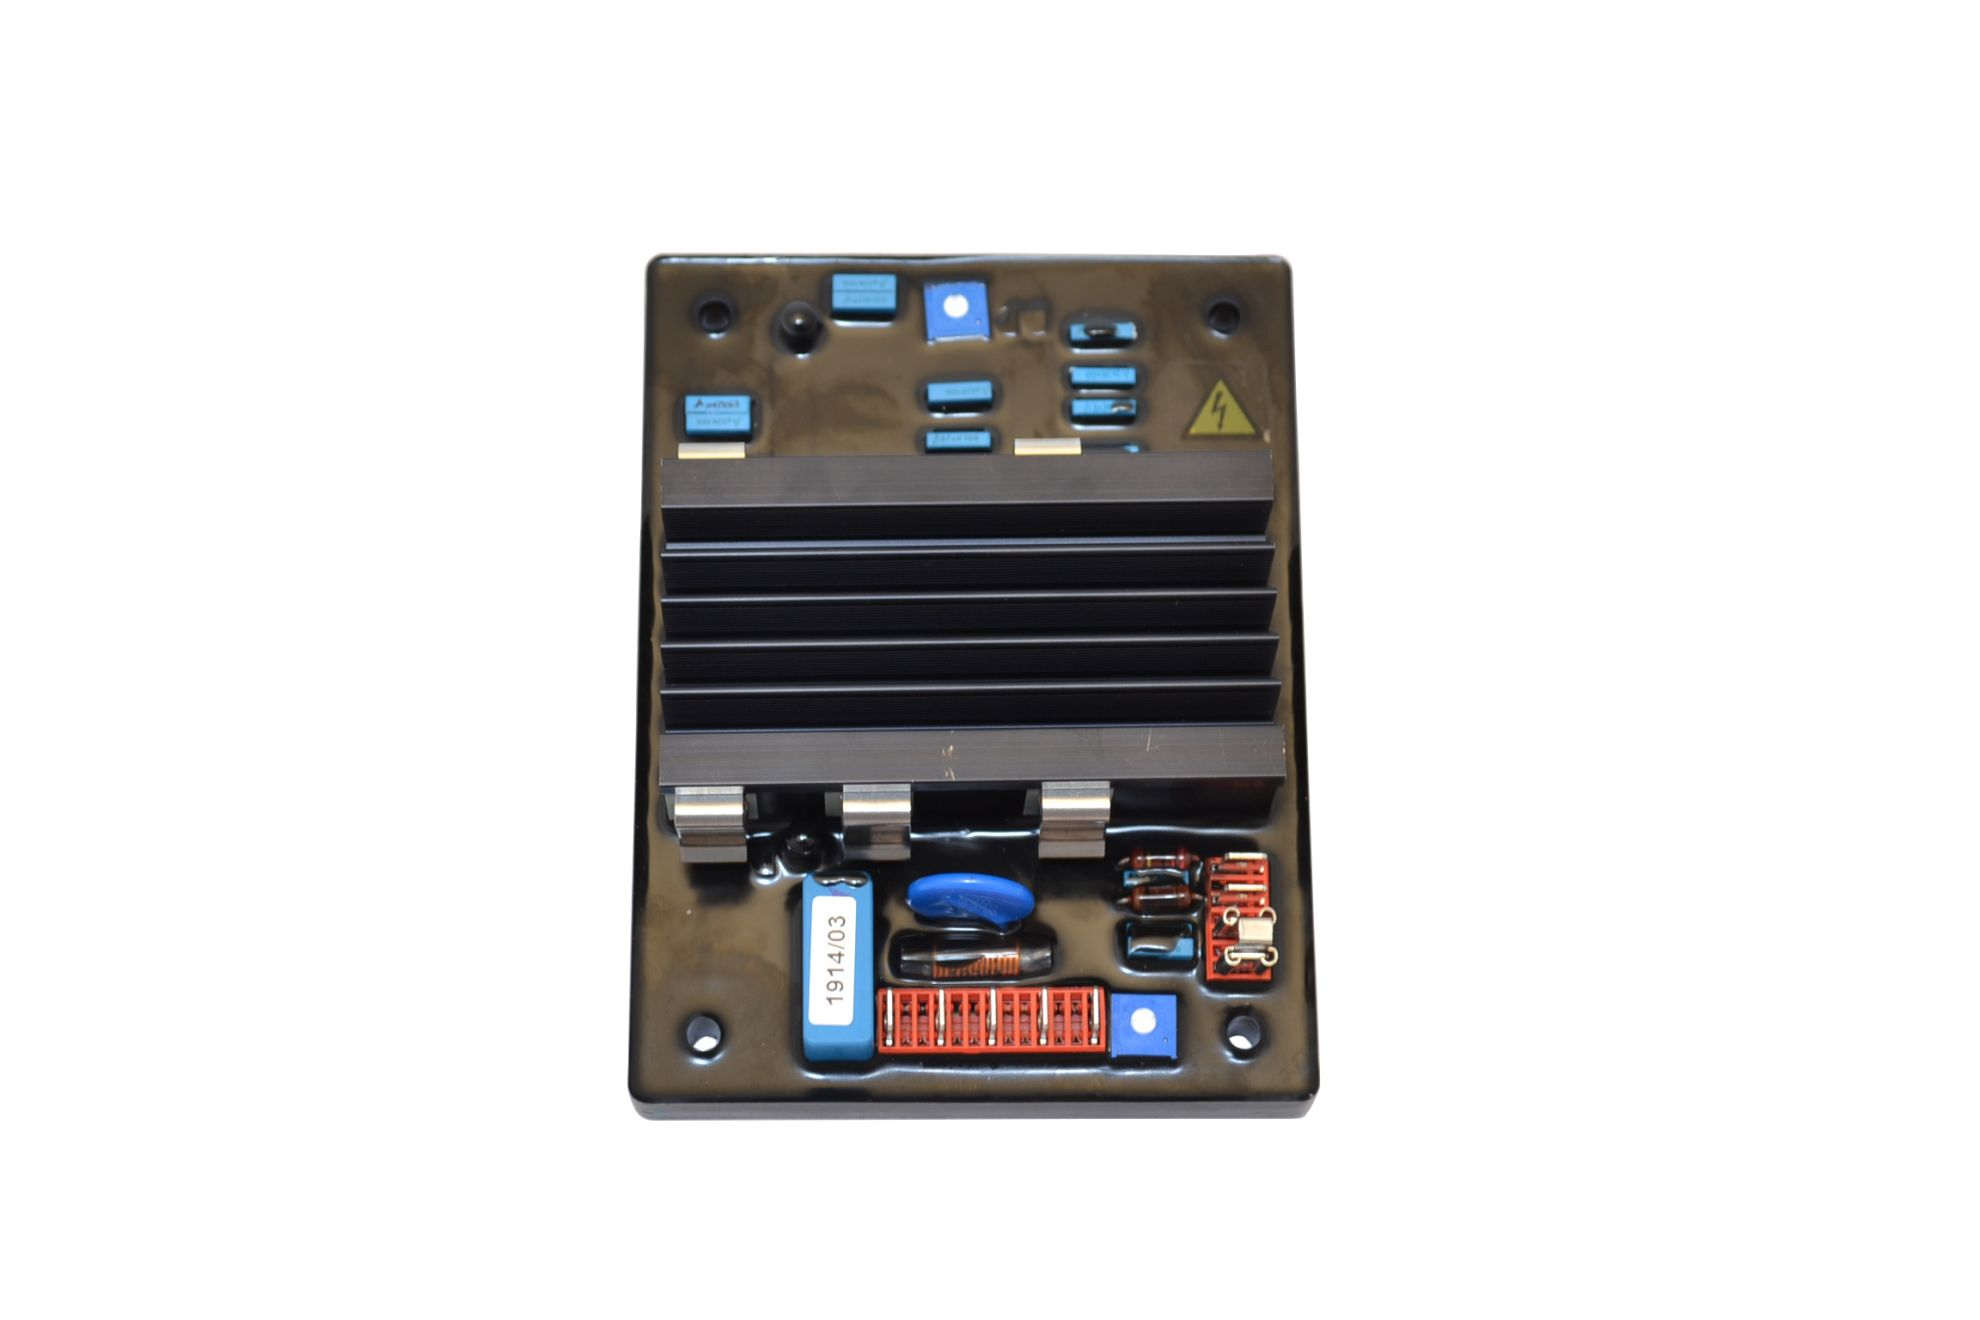 Stamford Generator Wiring Manual as well Sel Generator Wiring Diagram Pdf together with Ac Generator Voltage Regulator Wiring Diagram additionally Stamford Avr Mx321 Wiring Diagram additionally Sx440 Voltage Regulator Wiring Diagram Wiring Diagrams. on sx460 avr wiring diagram